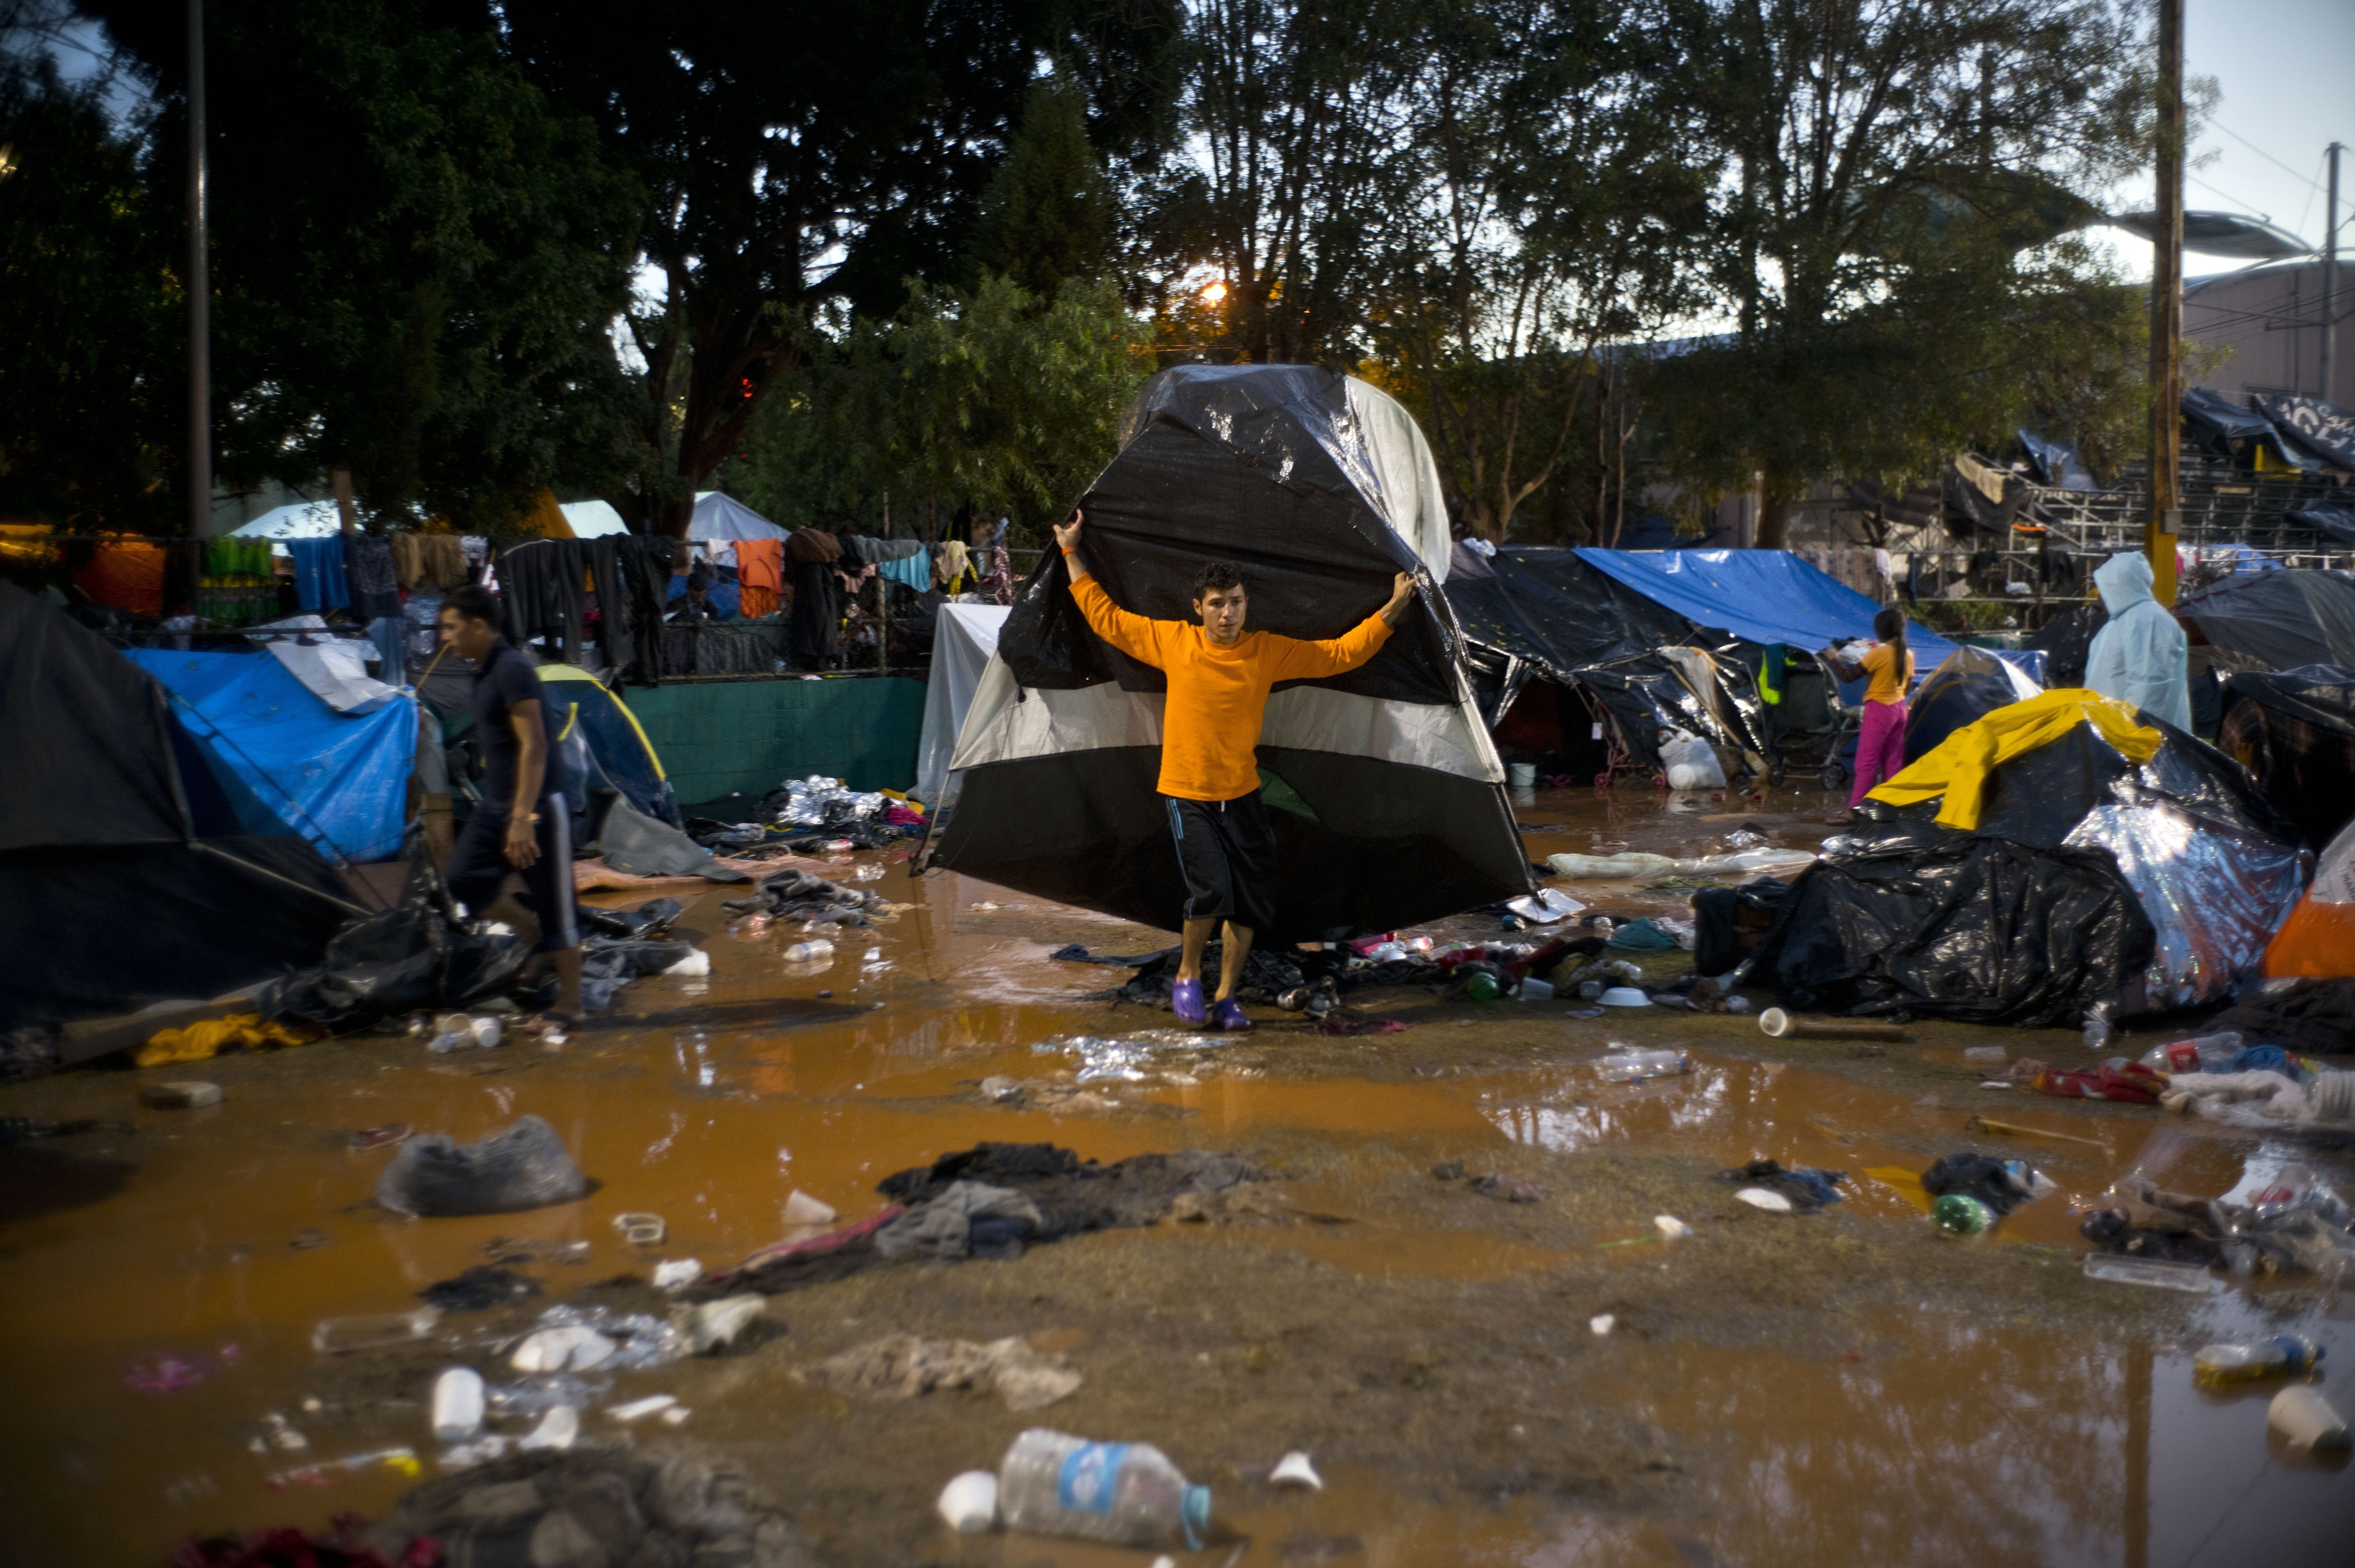 A migrant moves his tent in the rain before he was being transferred by bus to another shelter in better conditions than the flooded sports complex where thousands of Central Americans were living, in Tijuana, Mexico, following heavy rains, on Thursday, Nov. 29, 2018. Aid workers and humanitarian organizations expressed concerns Thursday about the unsanitary conditions at the sports complex in Tijuana where more than 6,000 Central American migrants are packed into a space adequate for half that many people and where lice infestations and respiratory infections are rampant. (AP Photo/Ramon Espinosa)